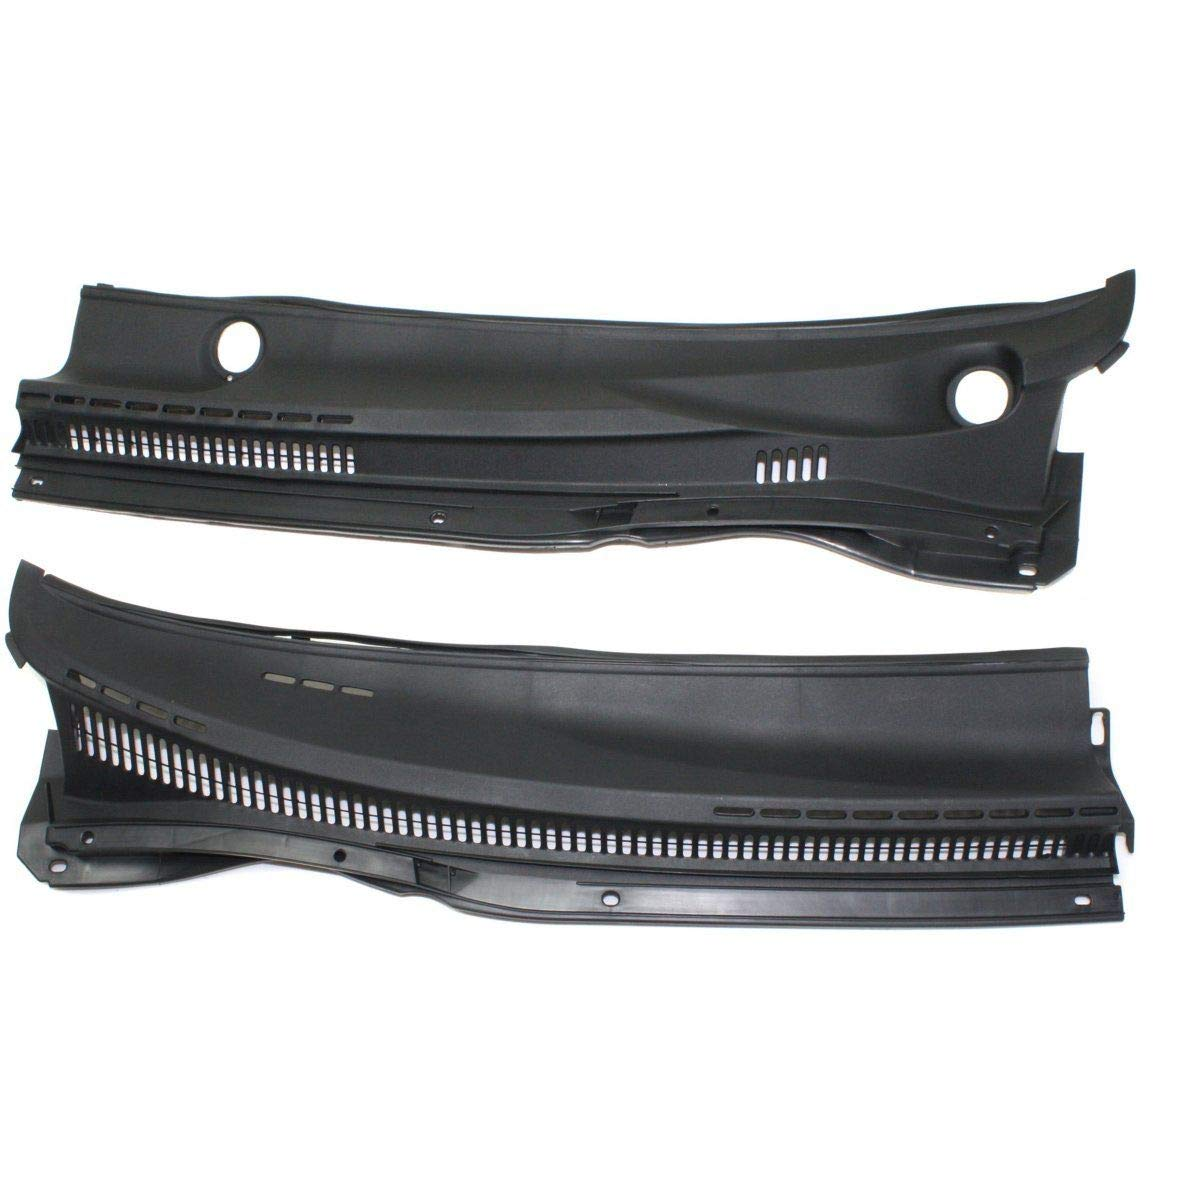 Wiper Cowl Grille For 2003 04 05 06 07 2008 Toyota Corolla Left and Right Black